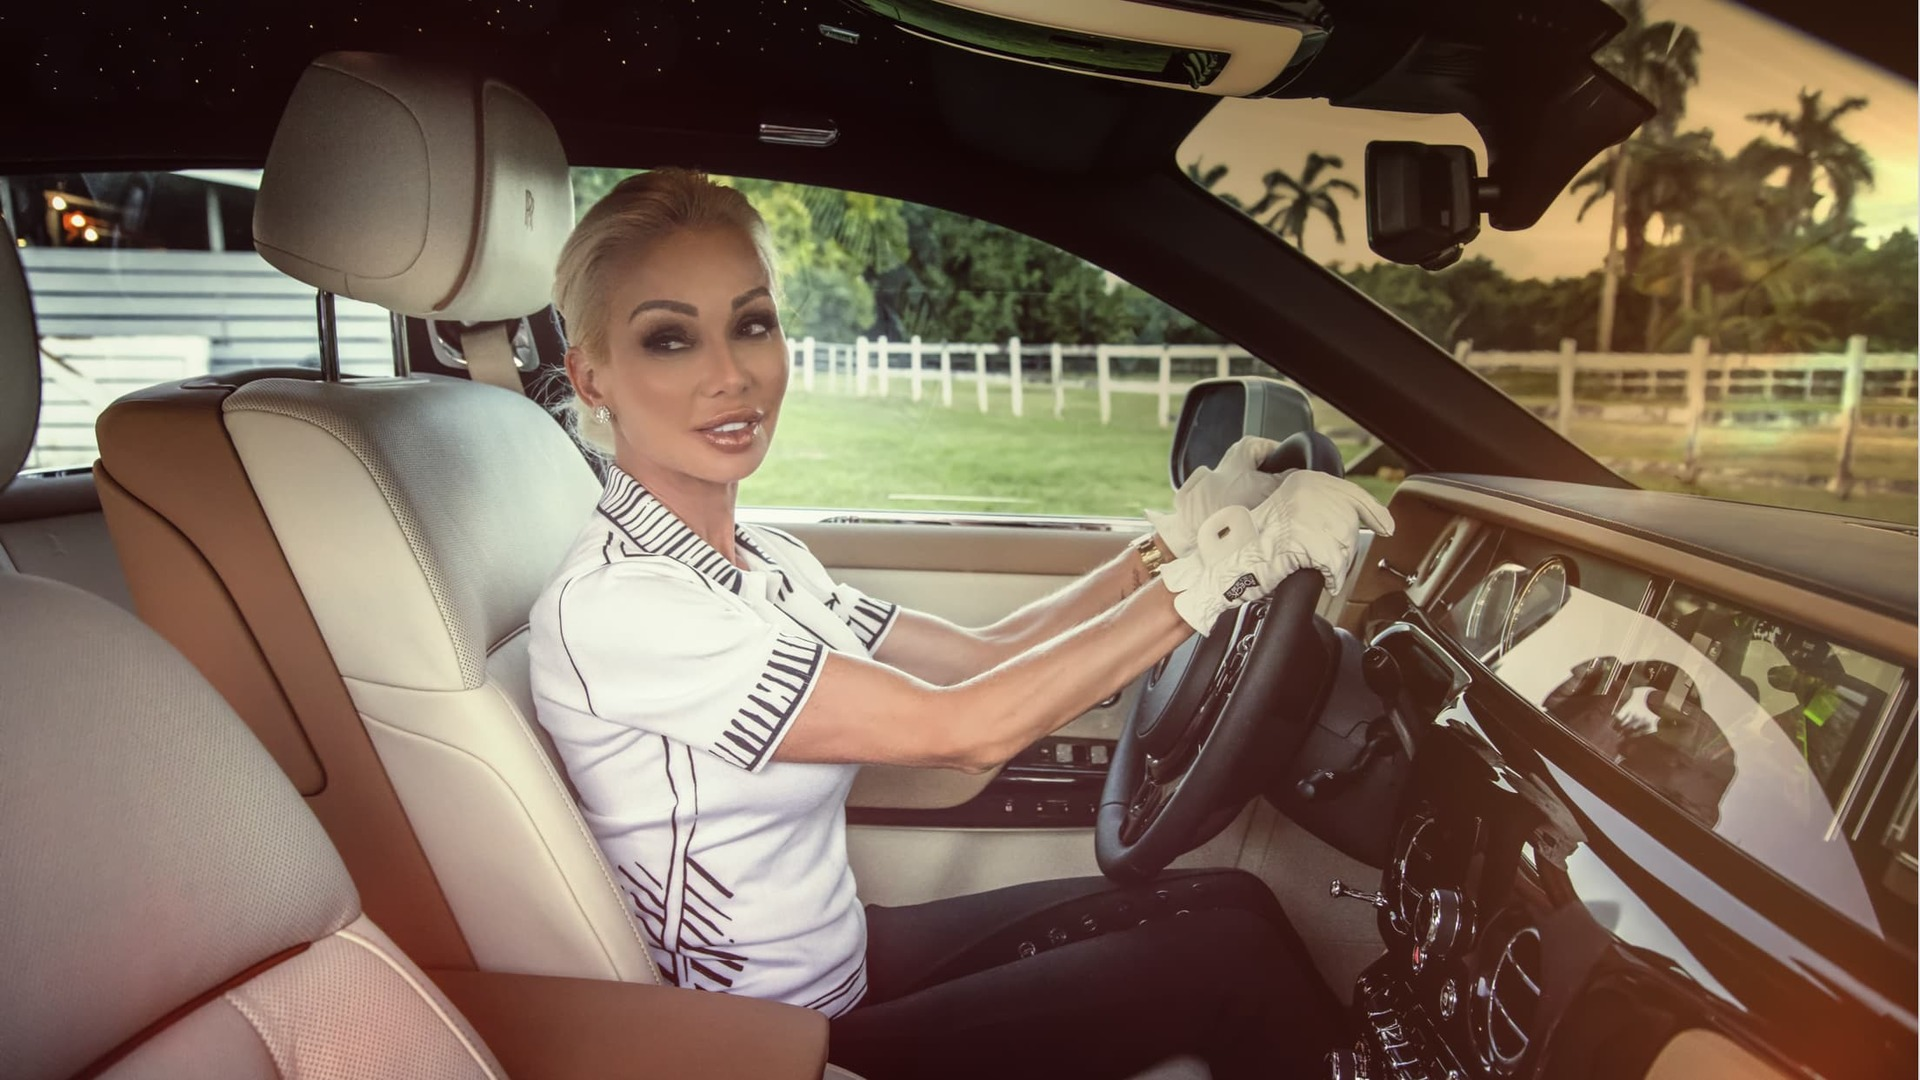 A shot of Sandra Fiorenza behind the wheel of her Rolls-Royce Phantom, holding the steering wheel with white leather driving gloves whilst looking towards the passenger seat